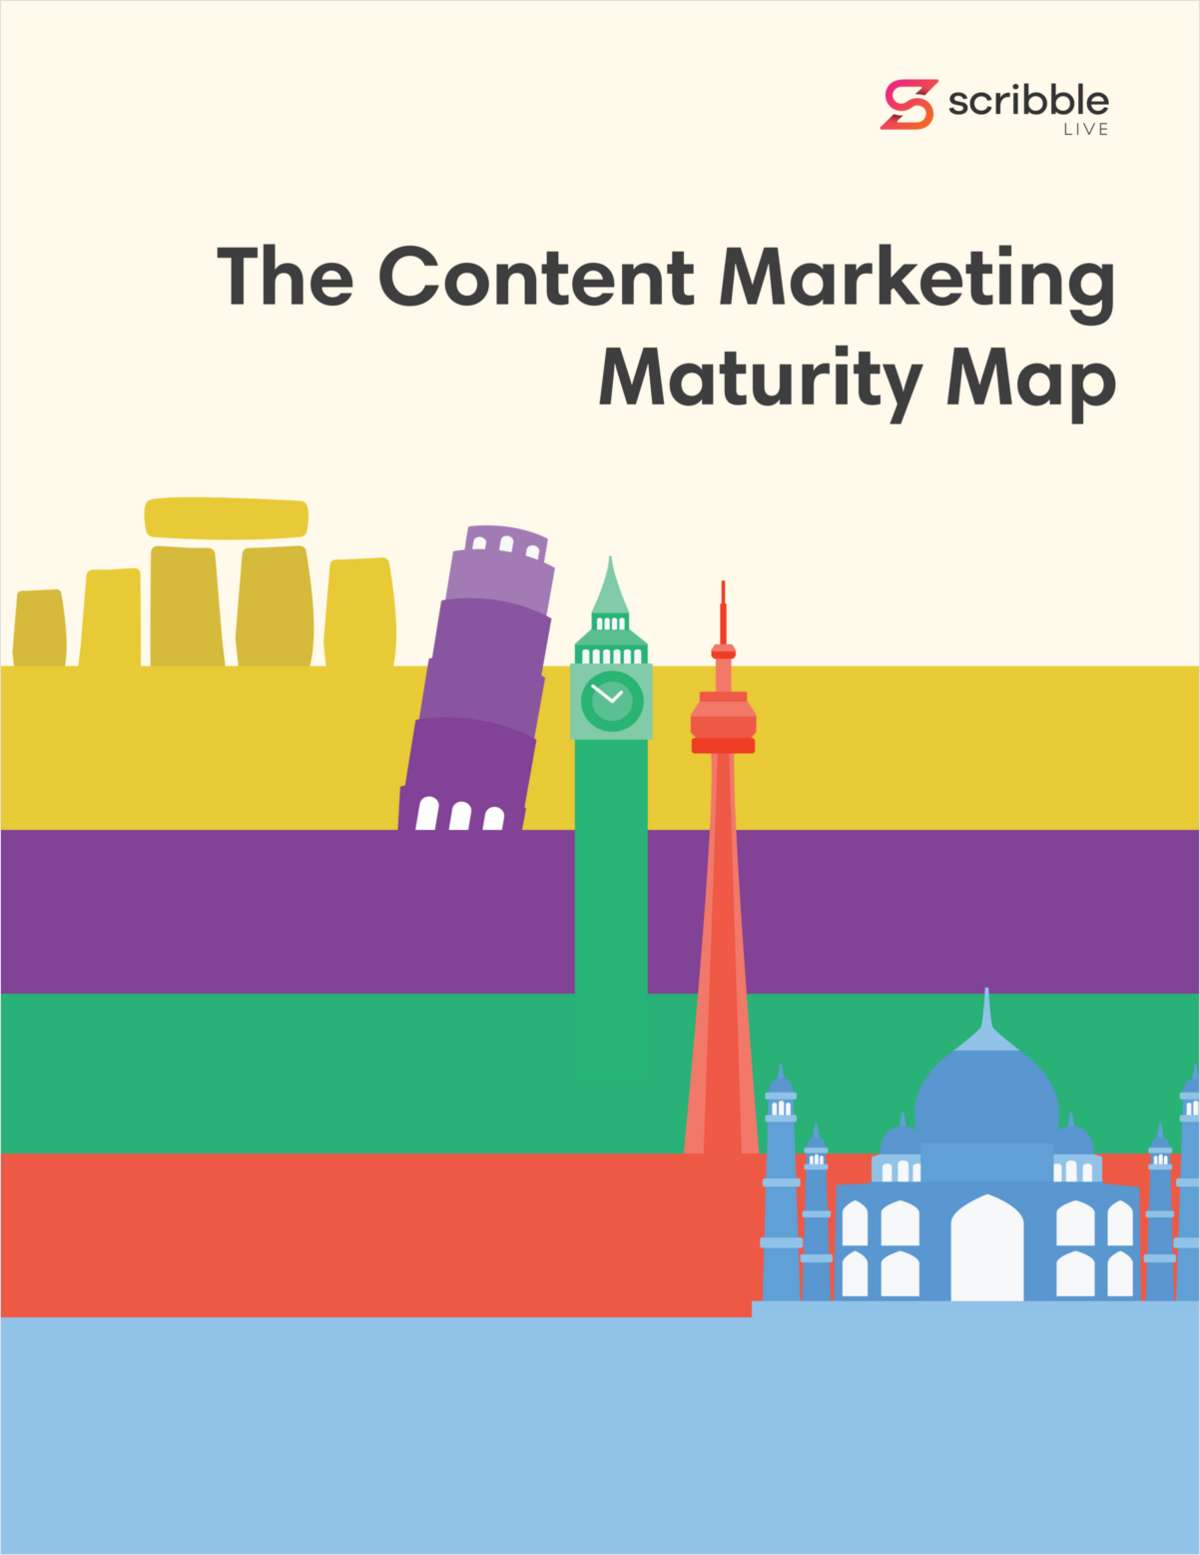 The Content Marketing Maturity Map